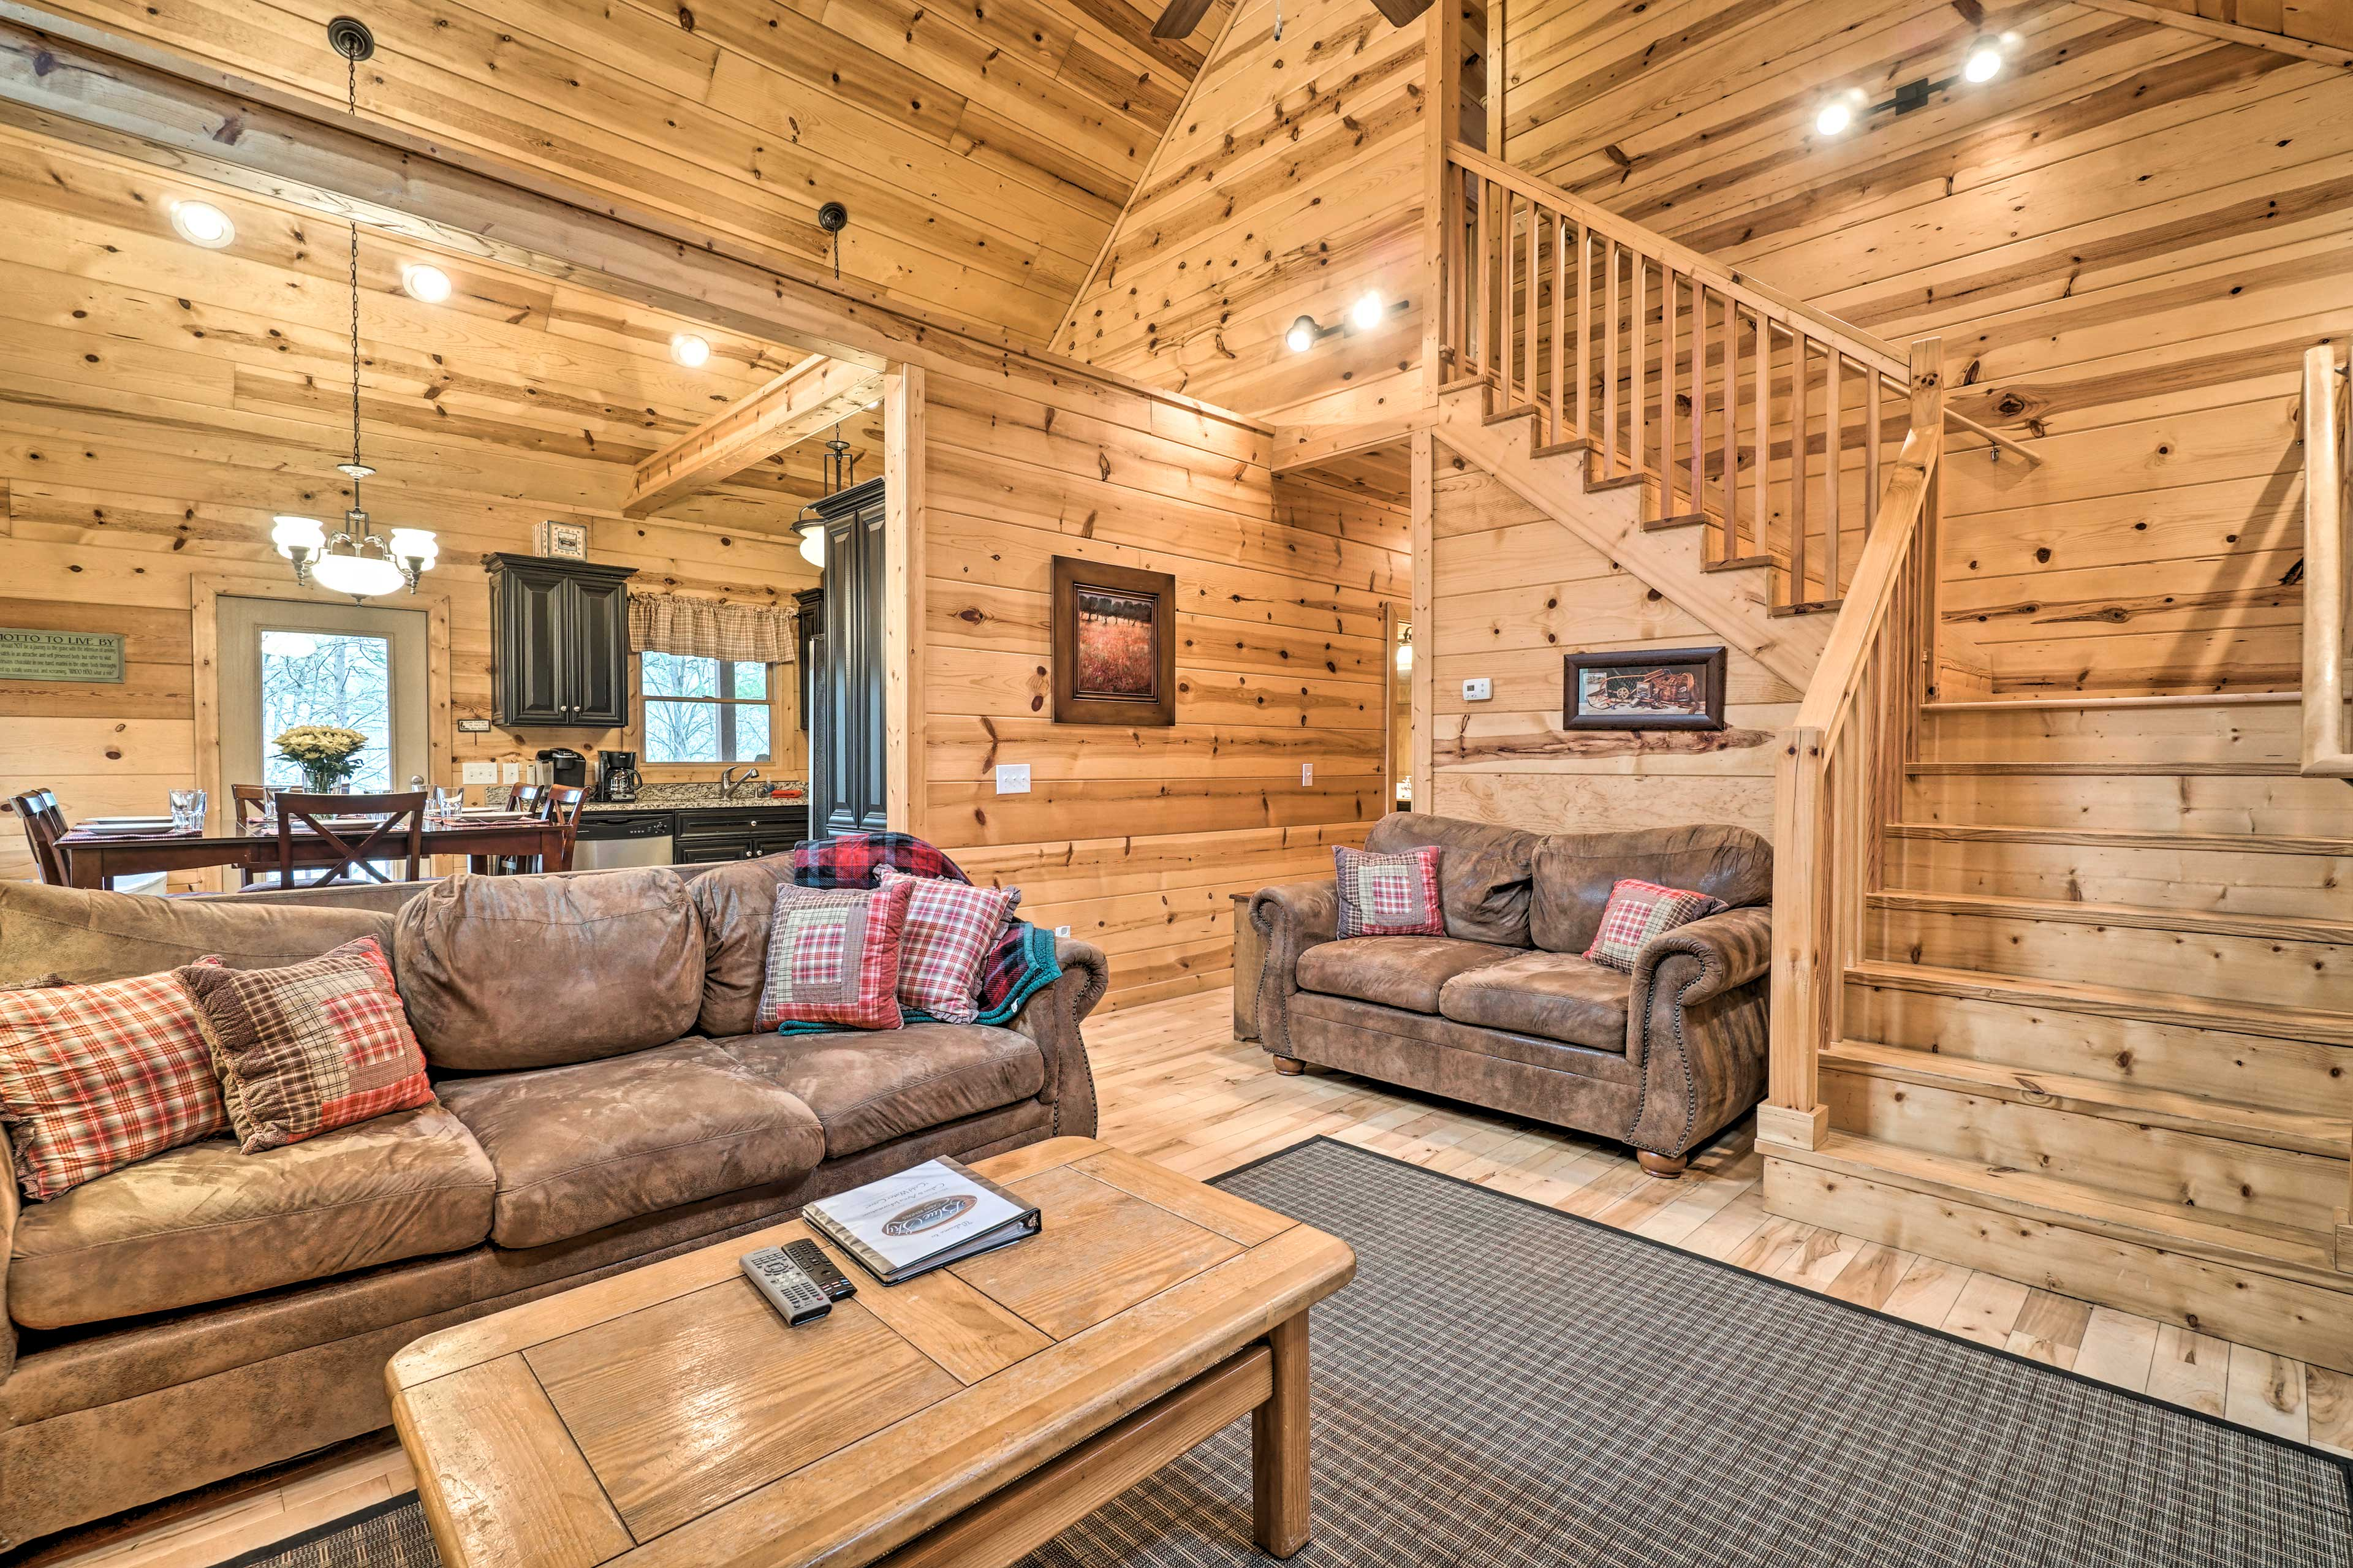 Vaulted ceilings and cedar walls add to the cozy cabin feel.